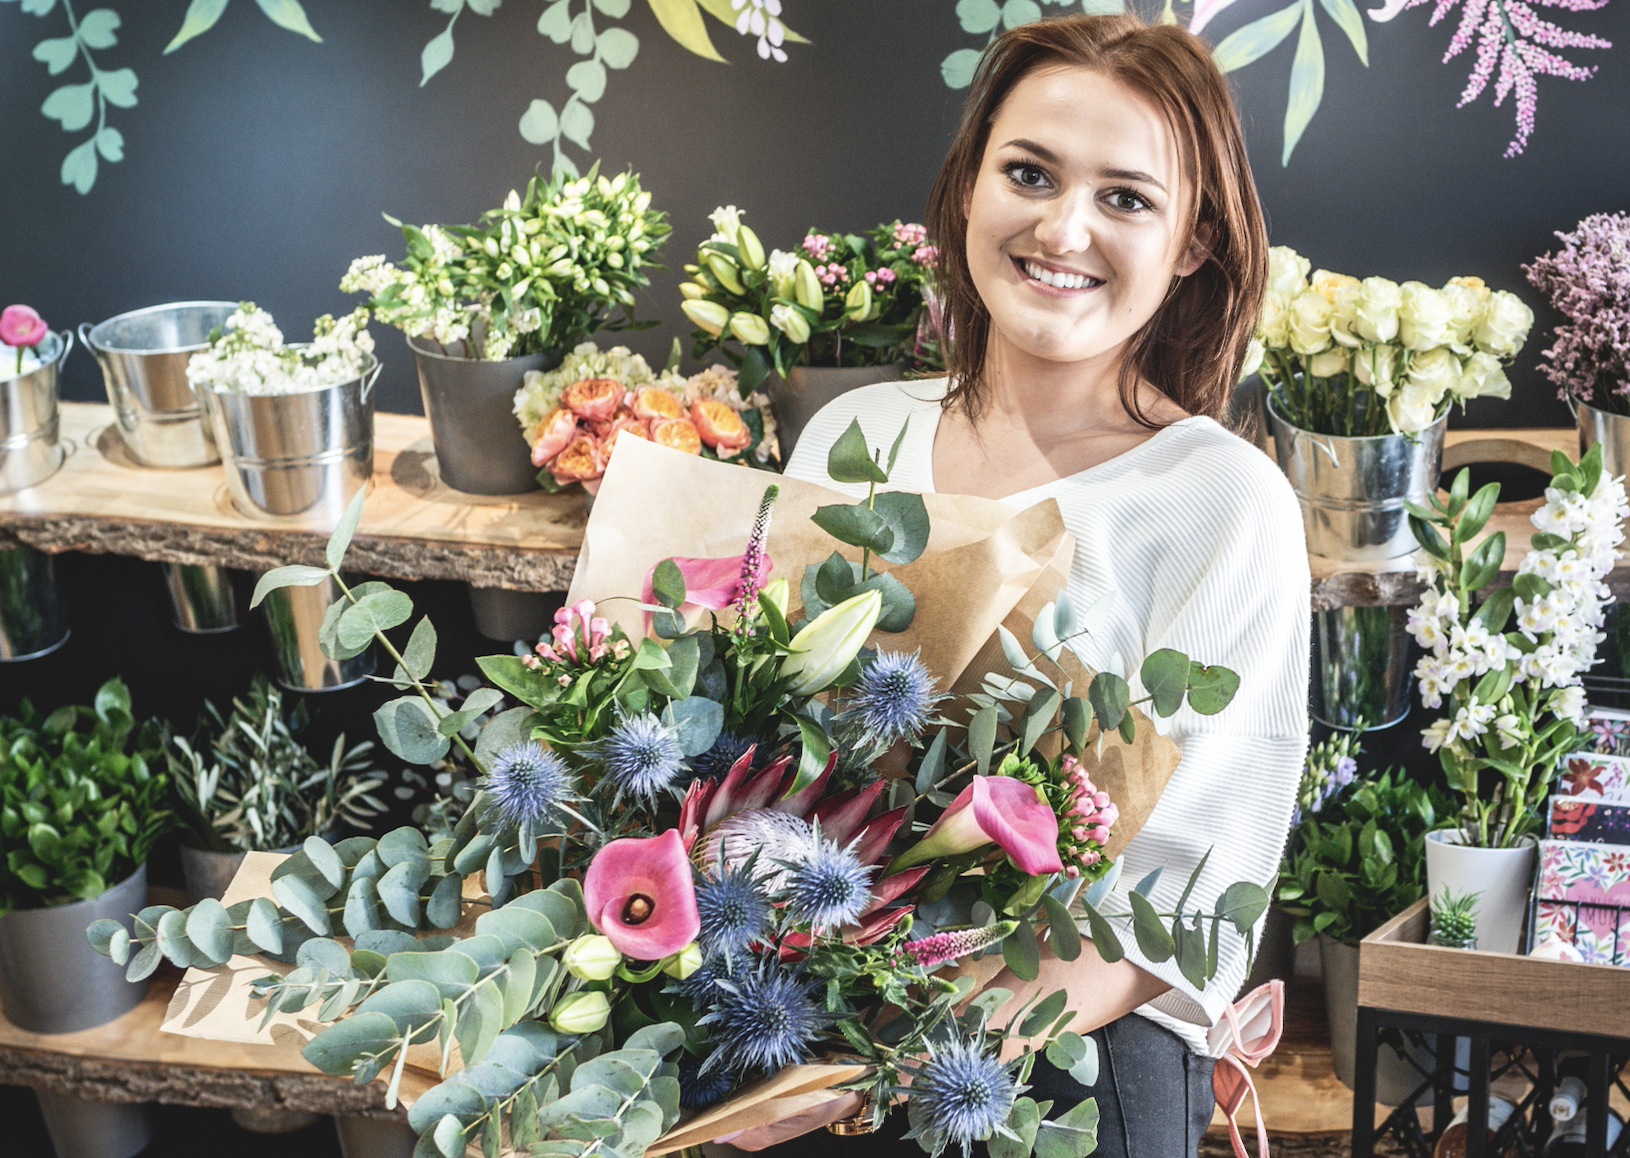 A young woman, Shannon, is holding a colourful bouquet she designed